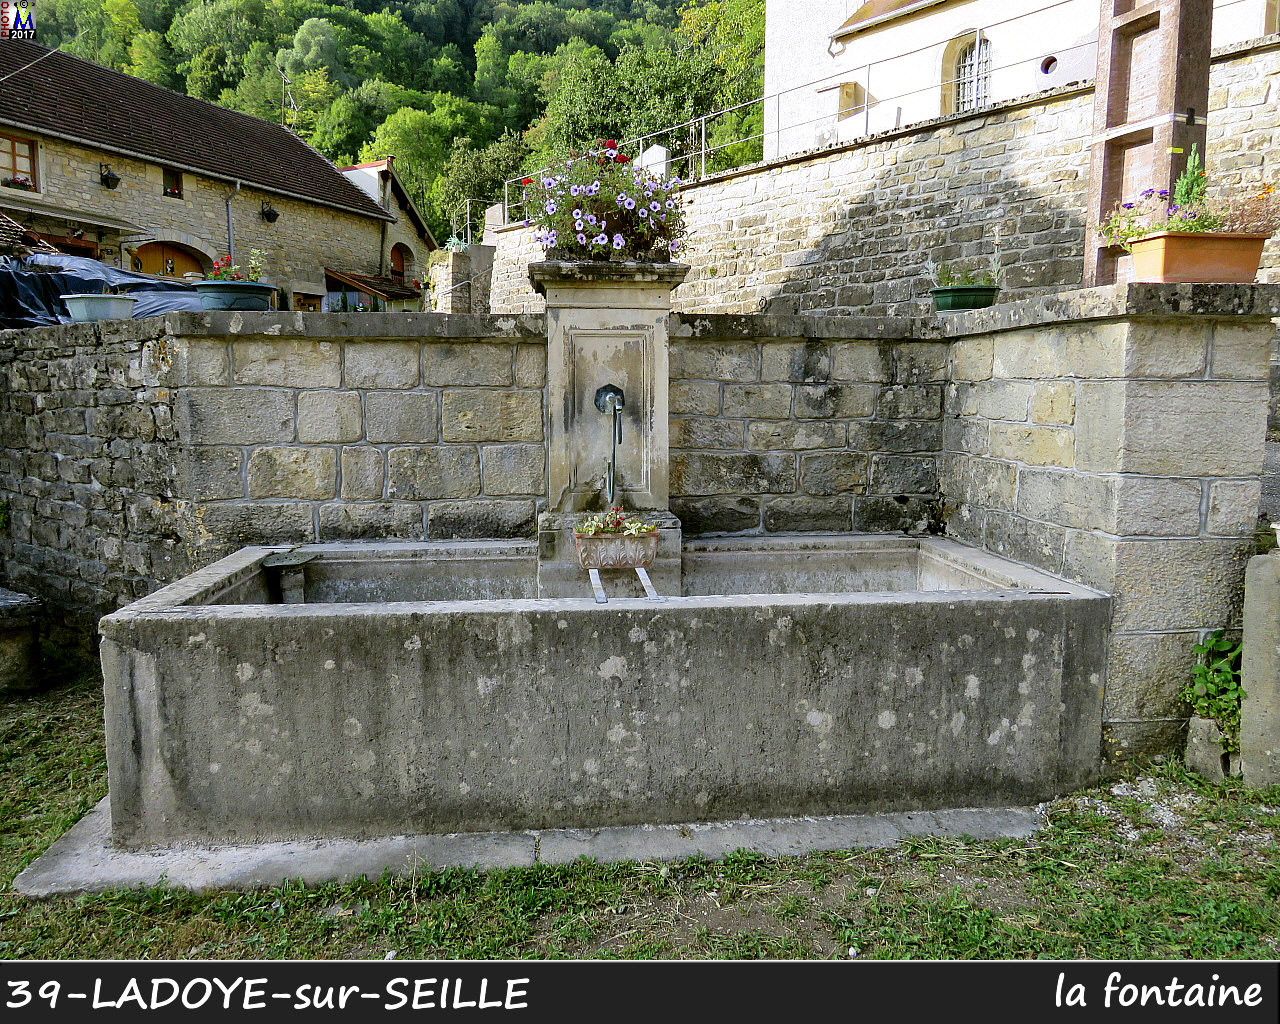 39LADOYE-s-SEILLE_fontaine_100.jpg